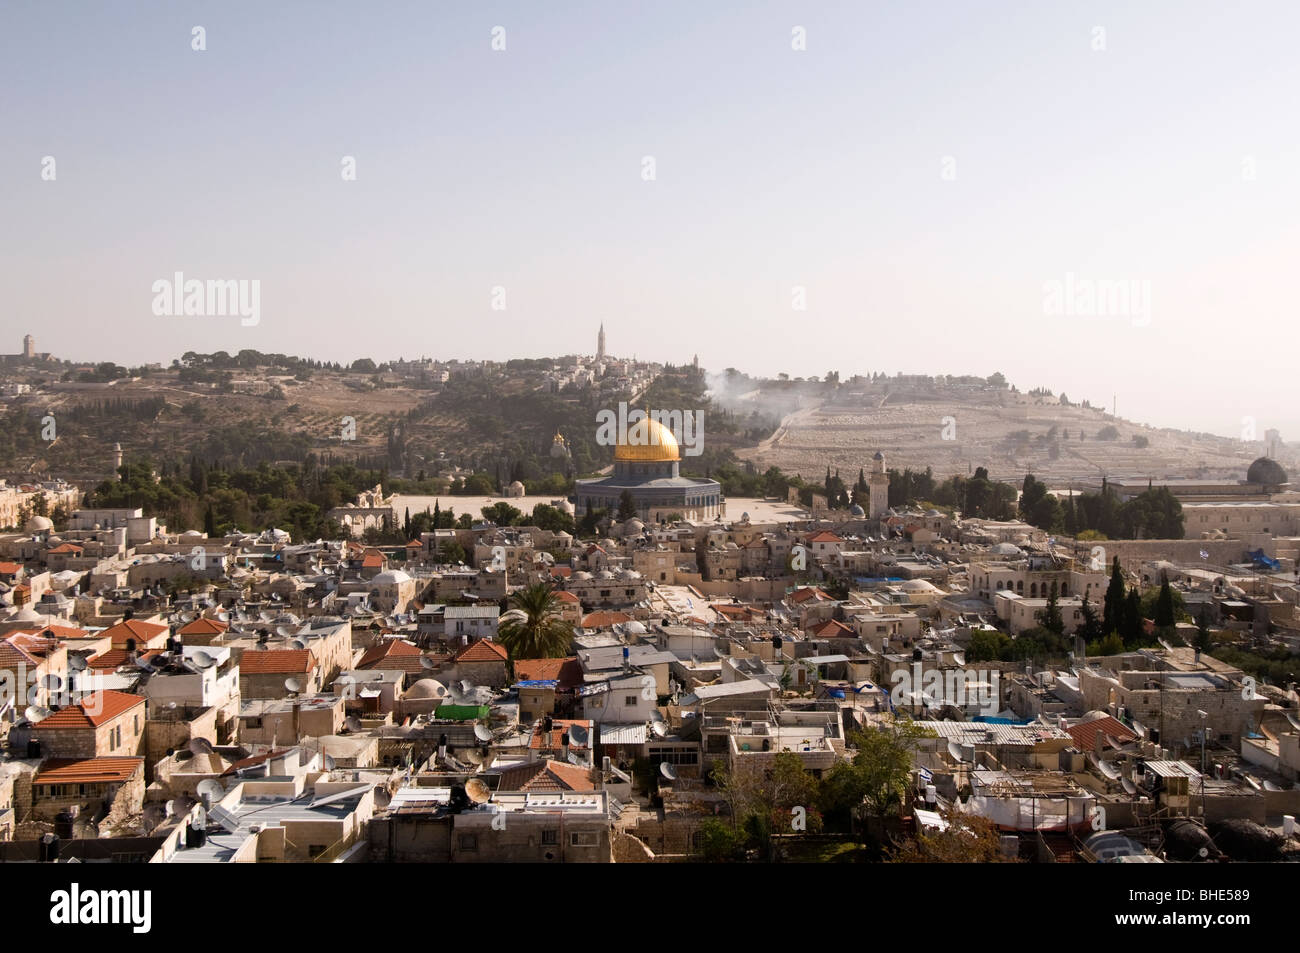 Dome of the Rock. Muslim holy site located on the Temple Mount in the Old City of Jerusalem, Israel Stock Photo